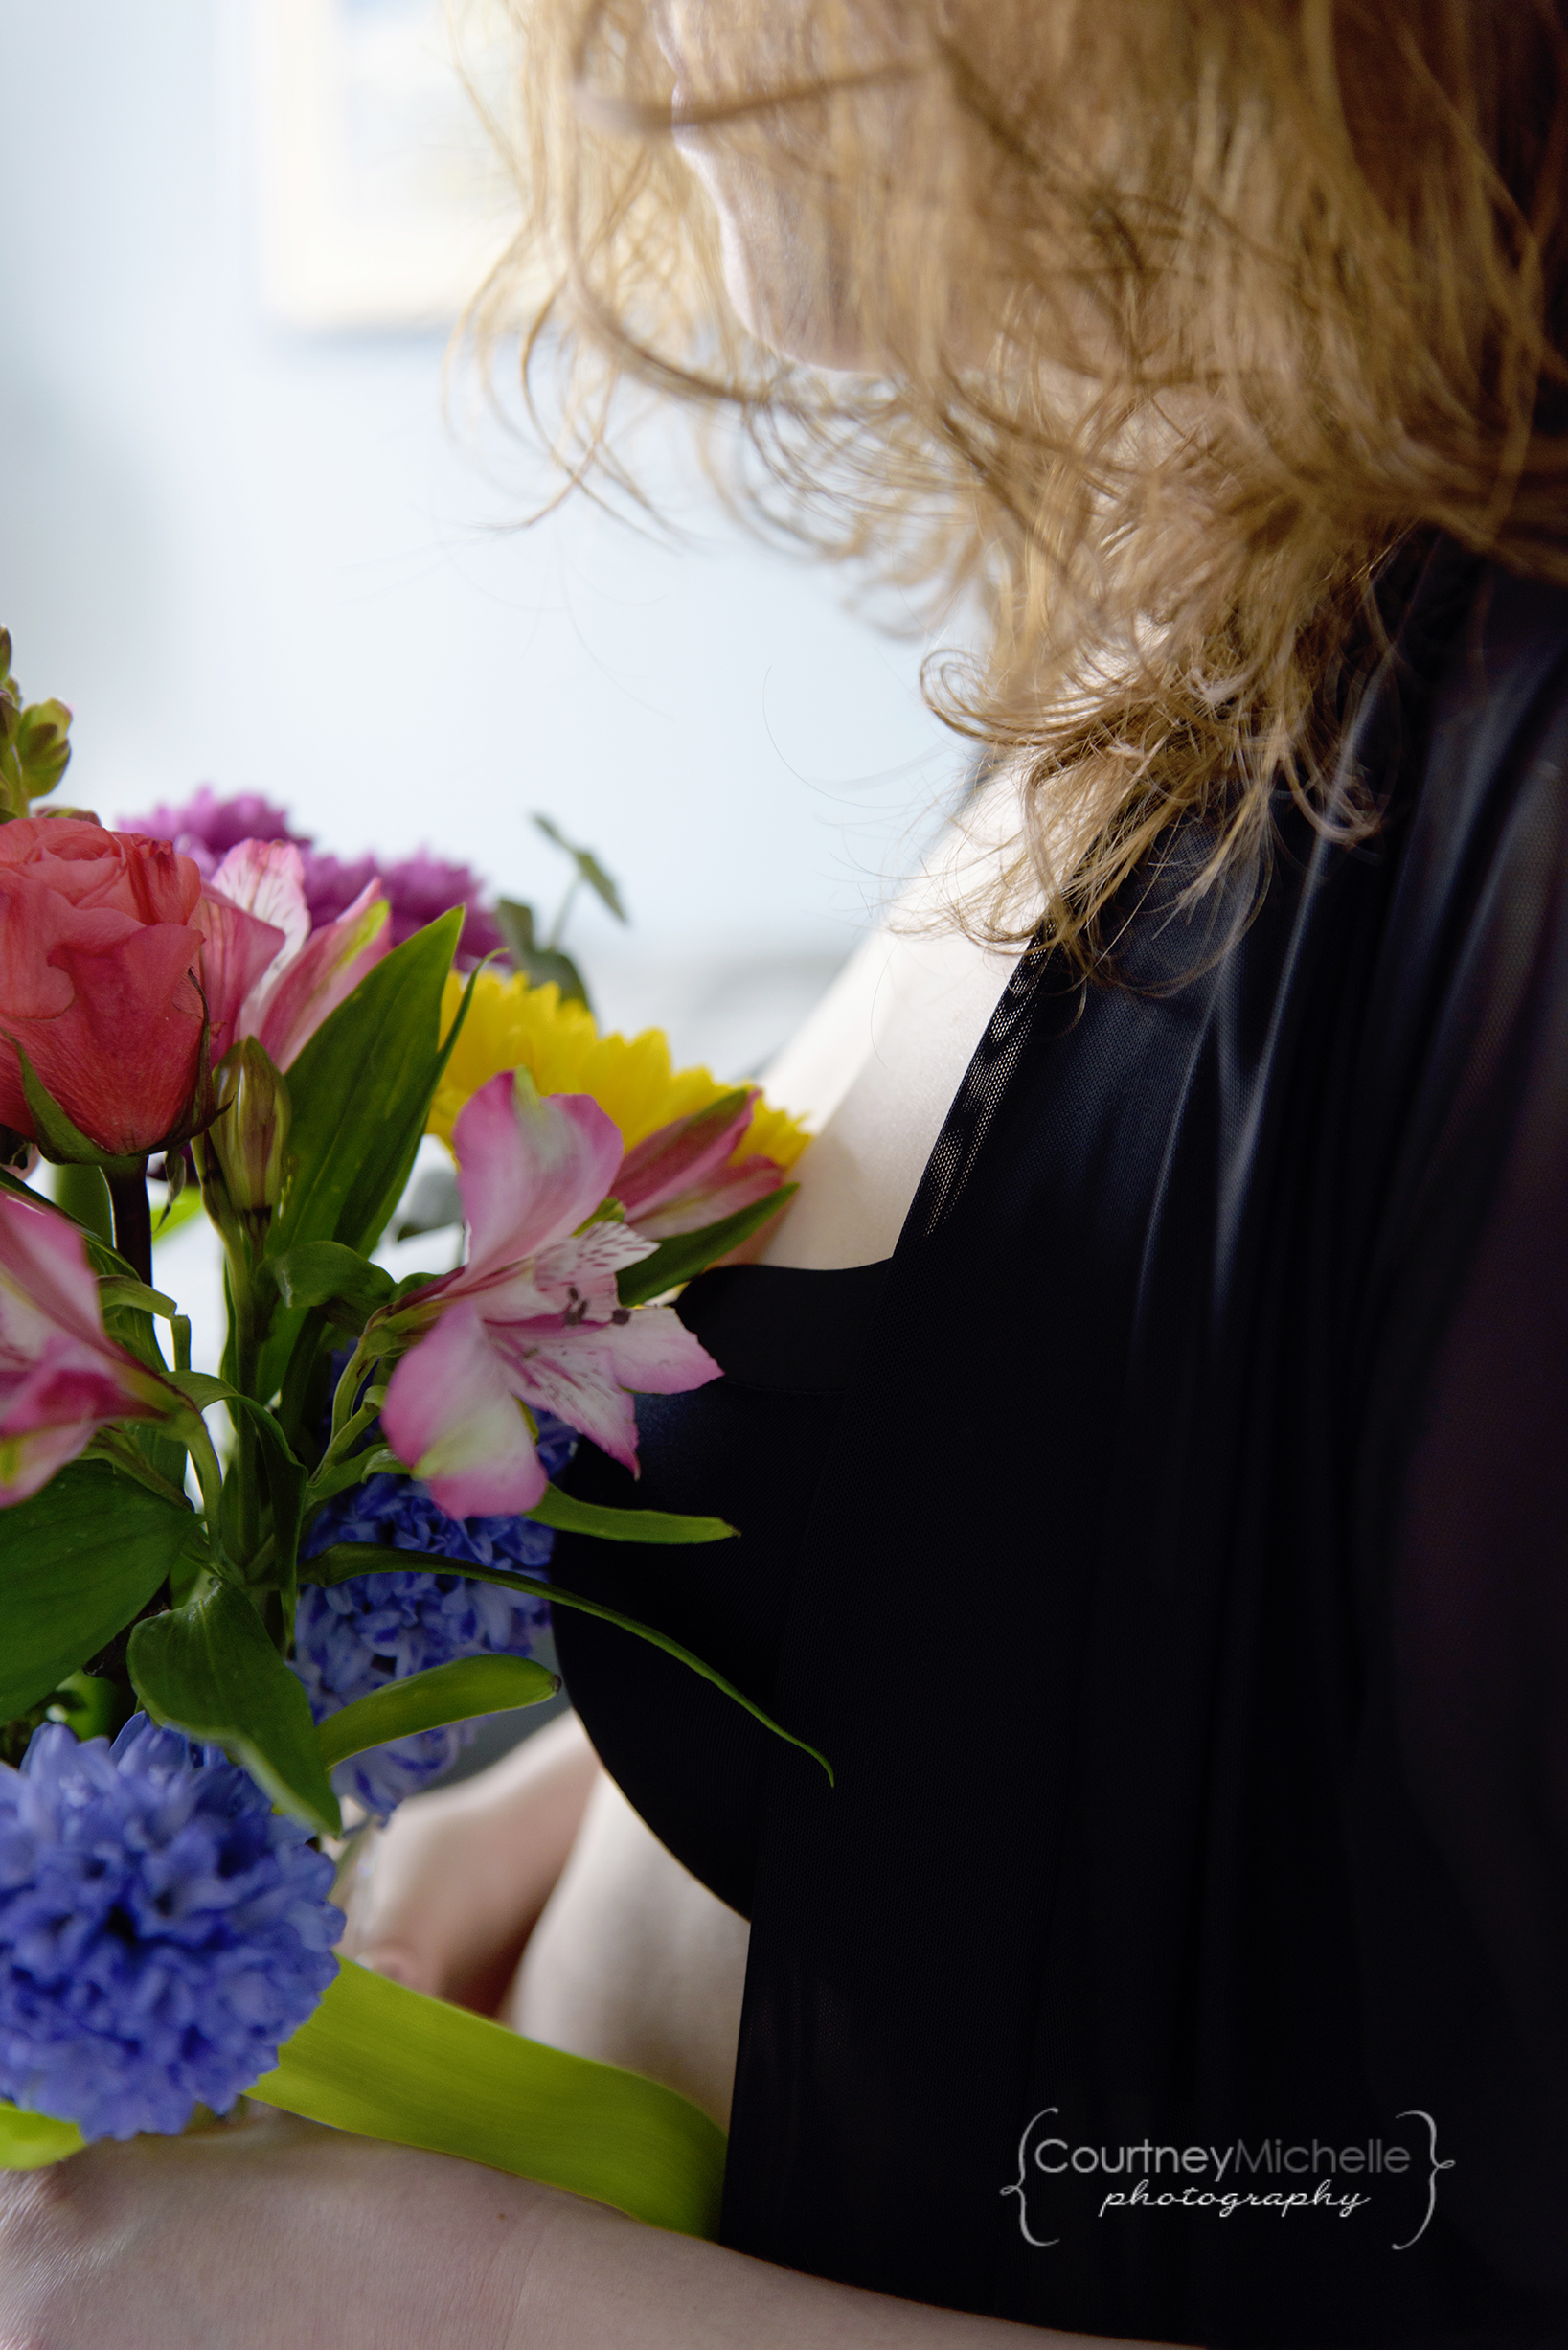 woman-in-robe-and-bra-with-spring-flowers-chicago-boudoir-photography-by-courtney-laper.jpg